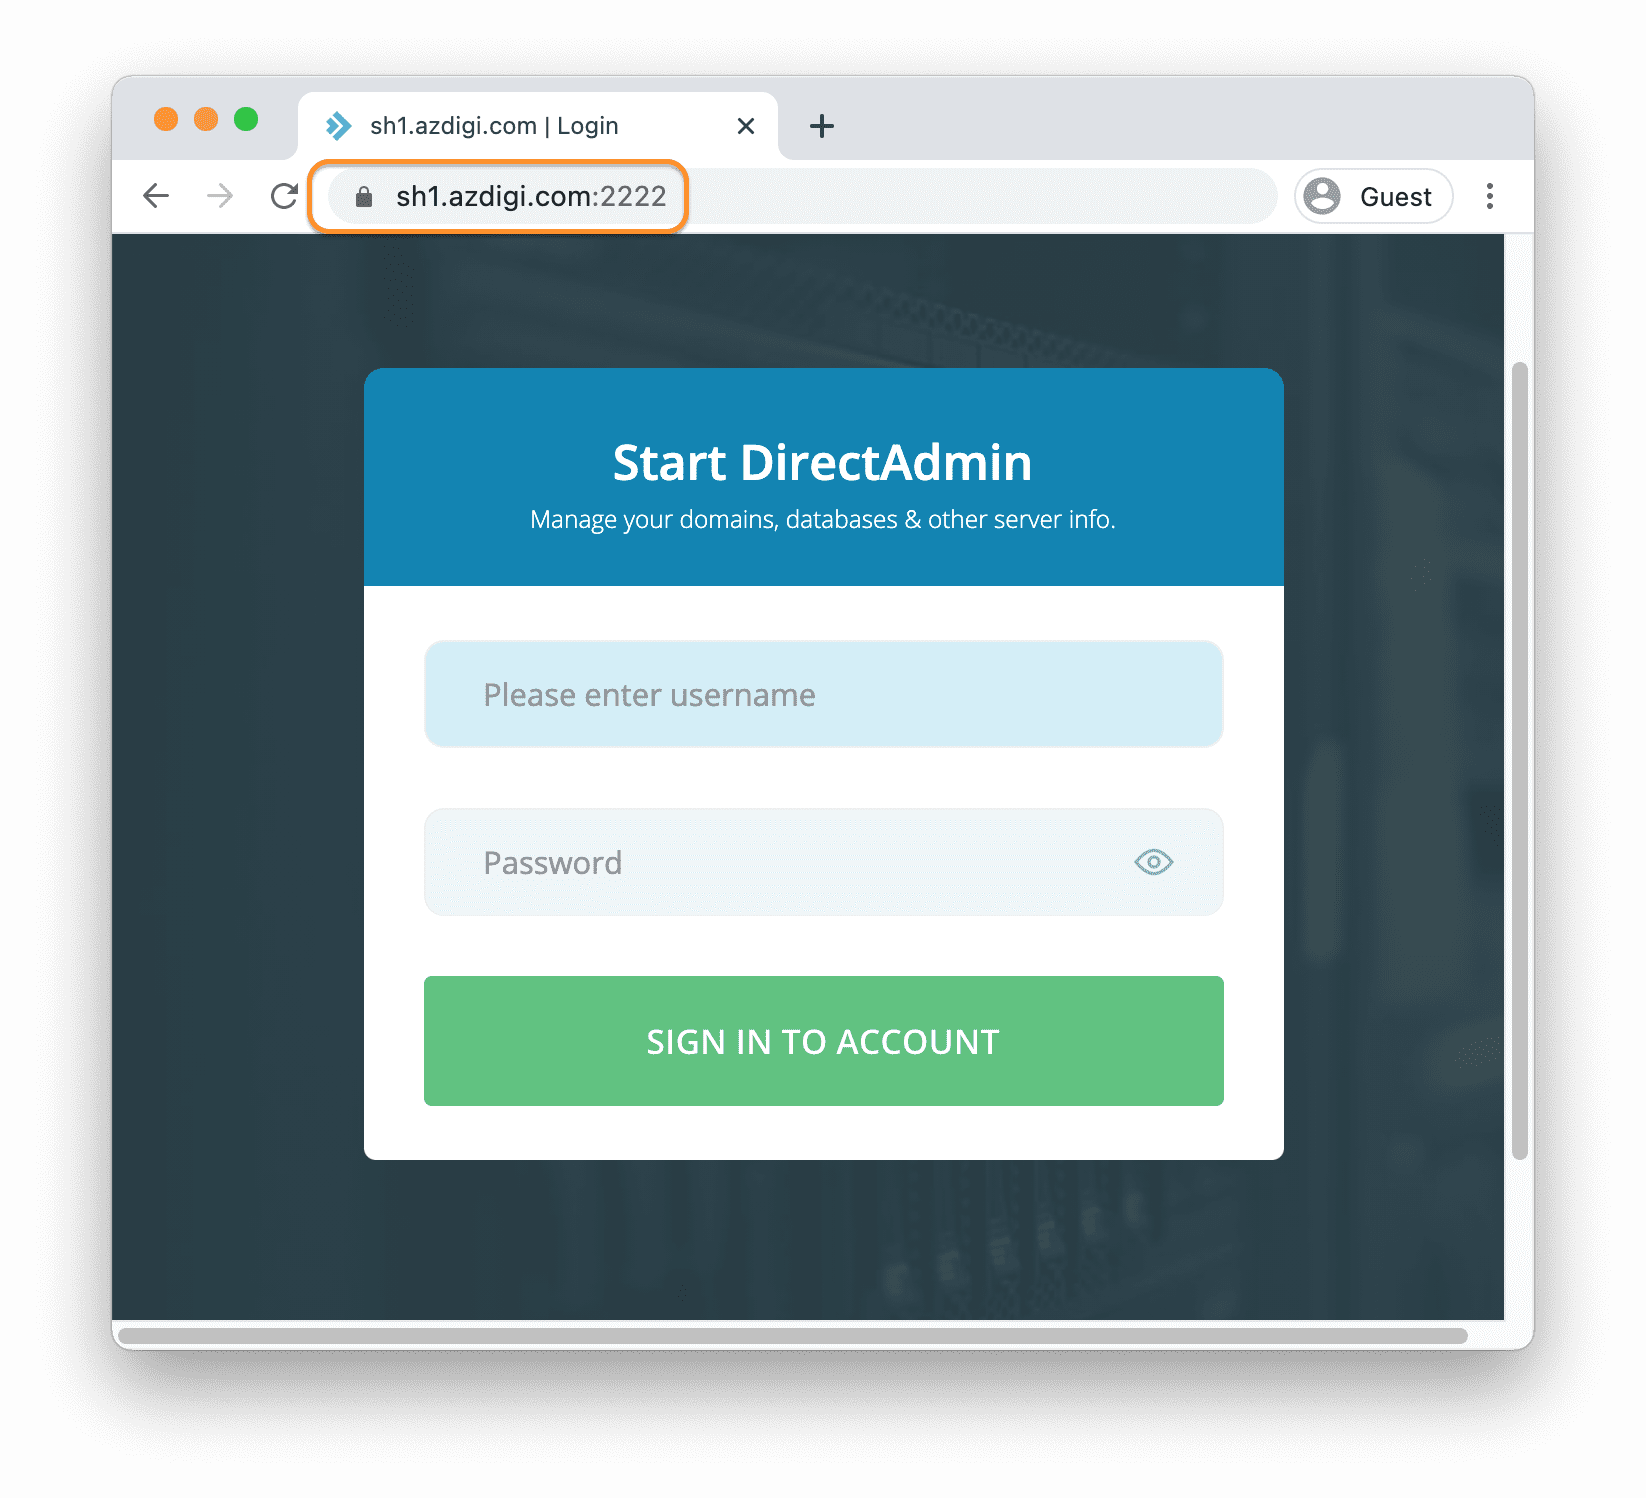 cài đặt SSL cho Hostname DirectAdmin - Installing an SSL certificate for your hostname using LetsEncrypt